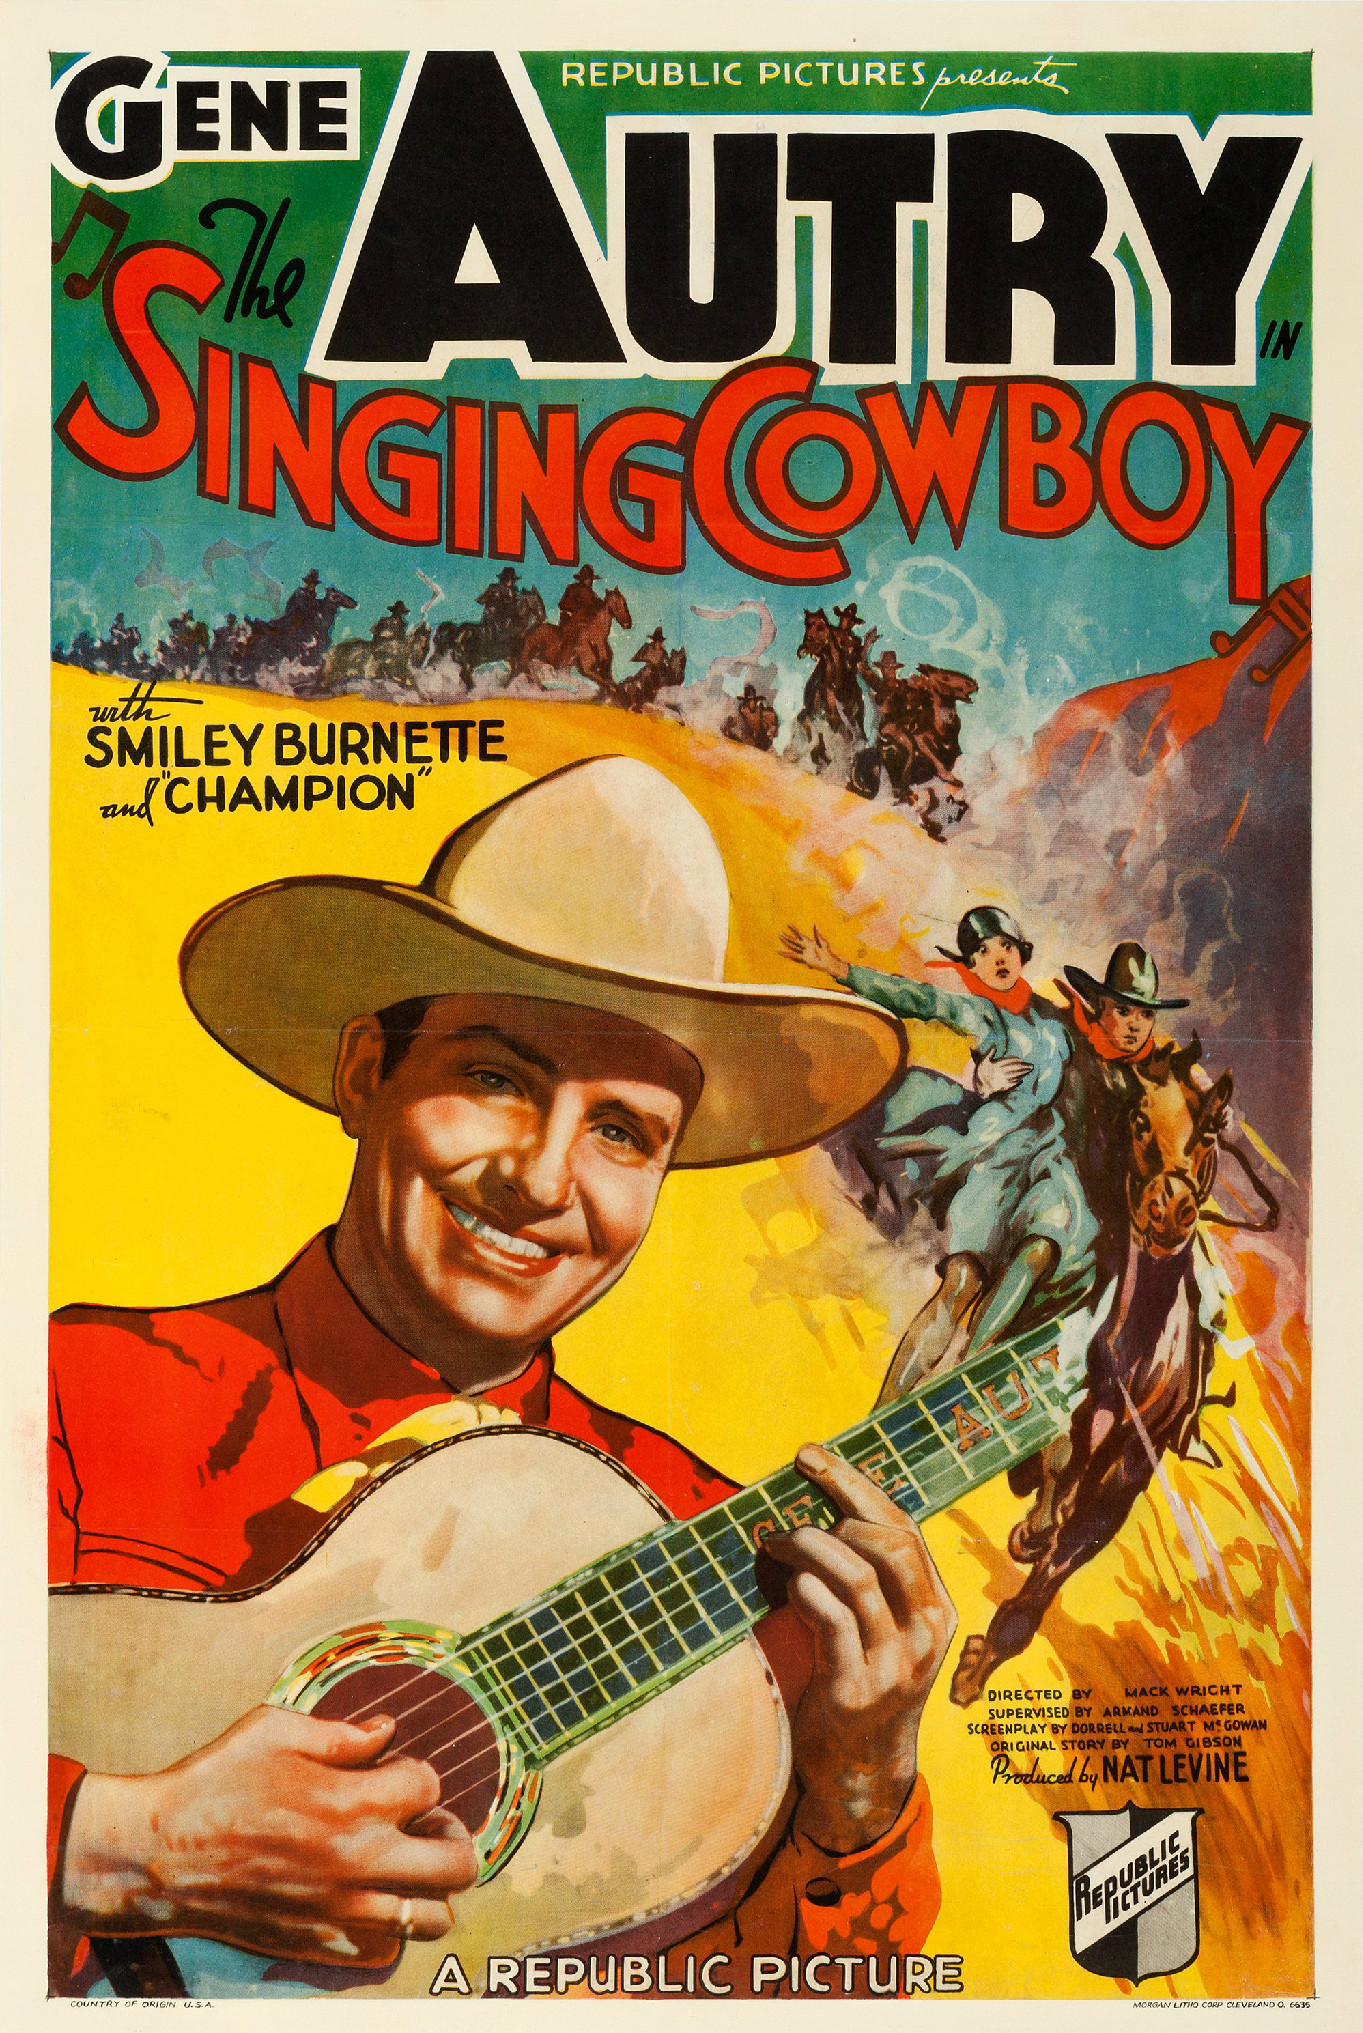 Gene Autry - The Singing Cowboy, Chapter Two